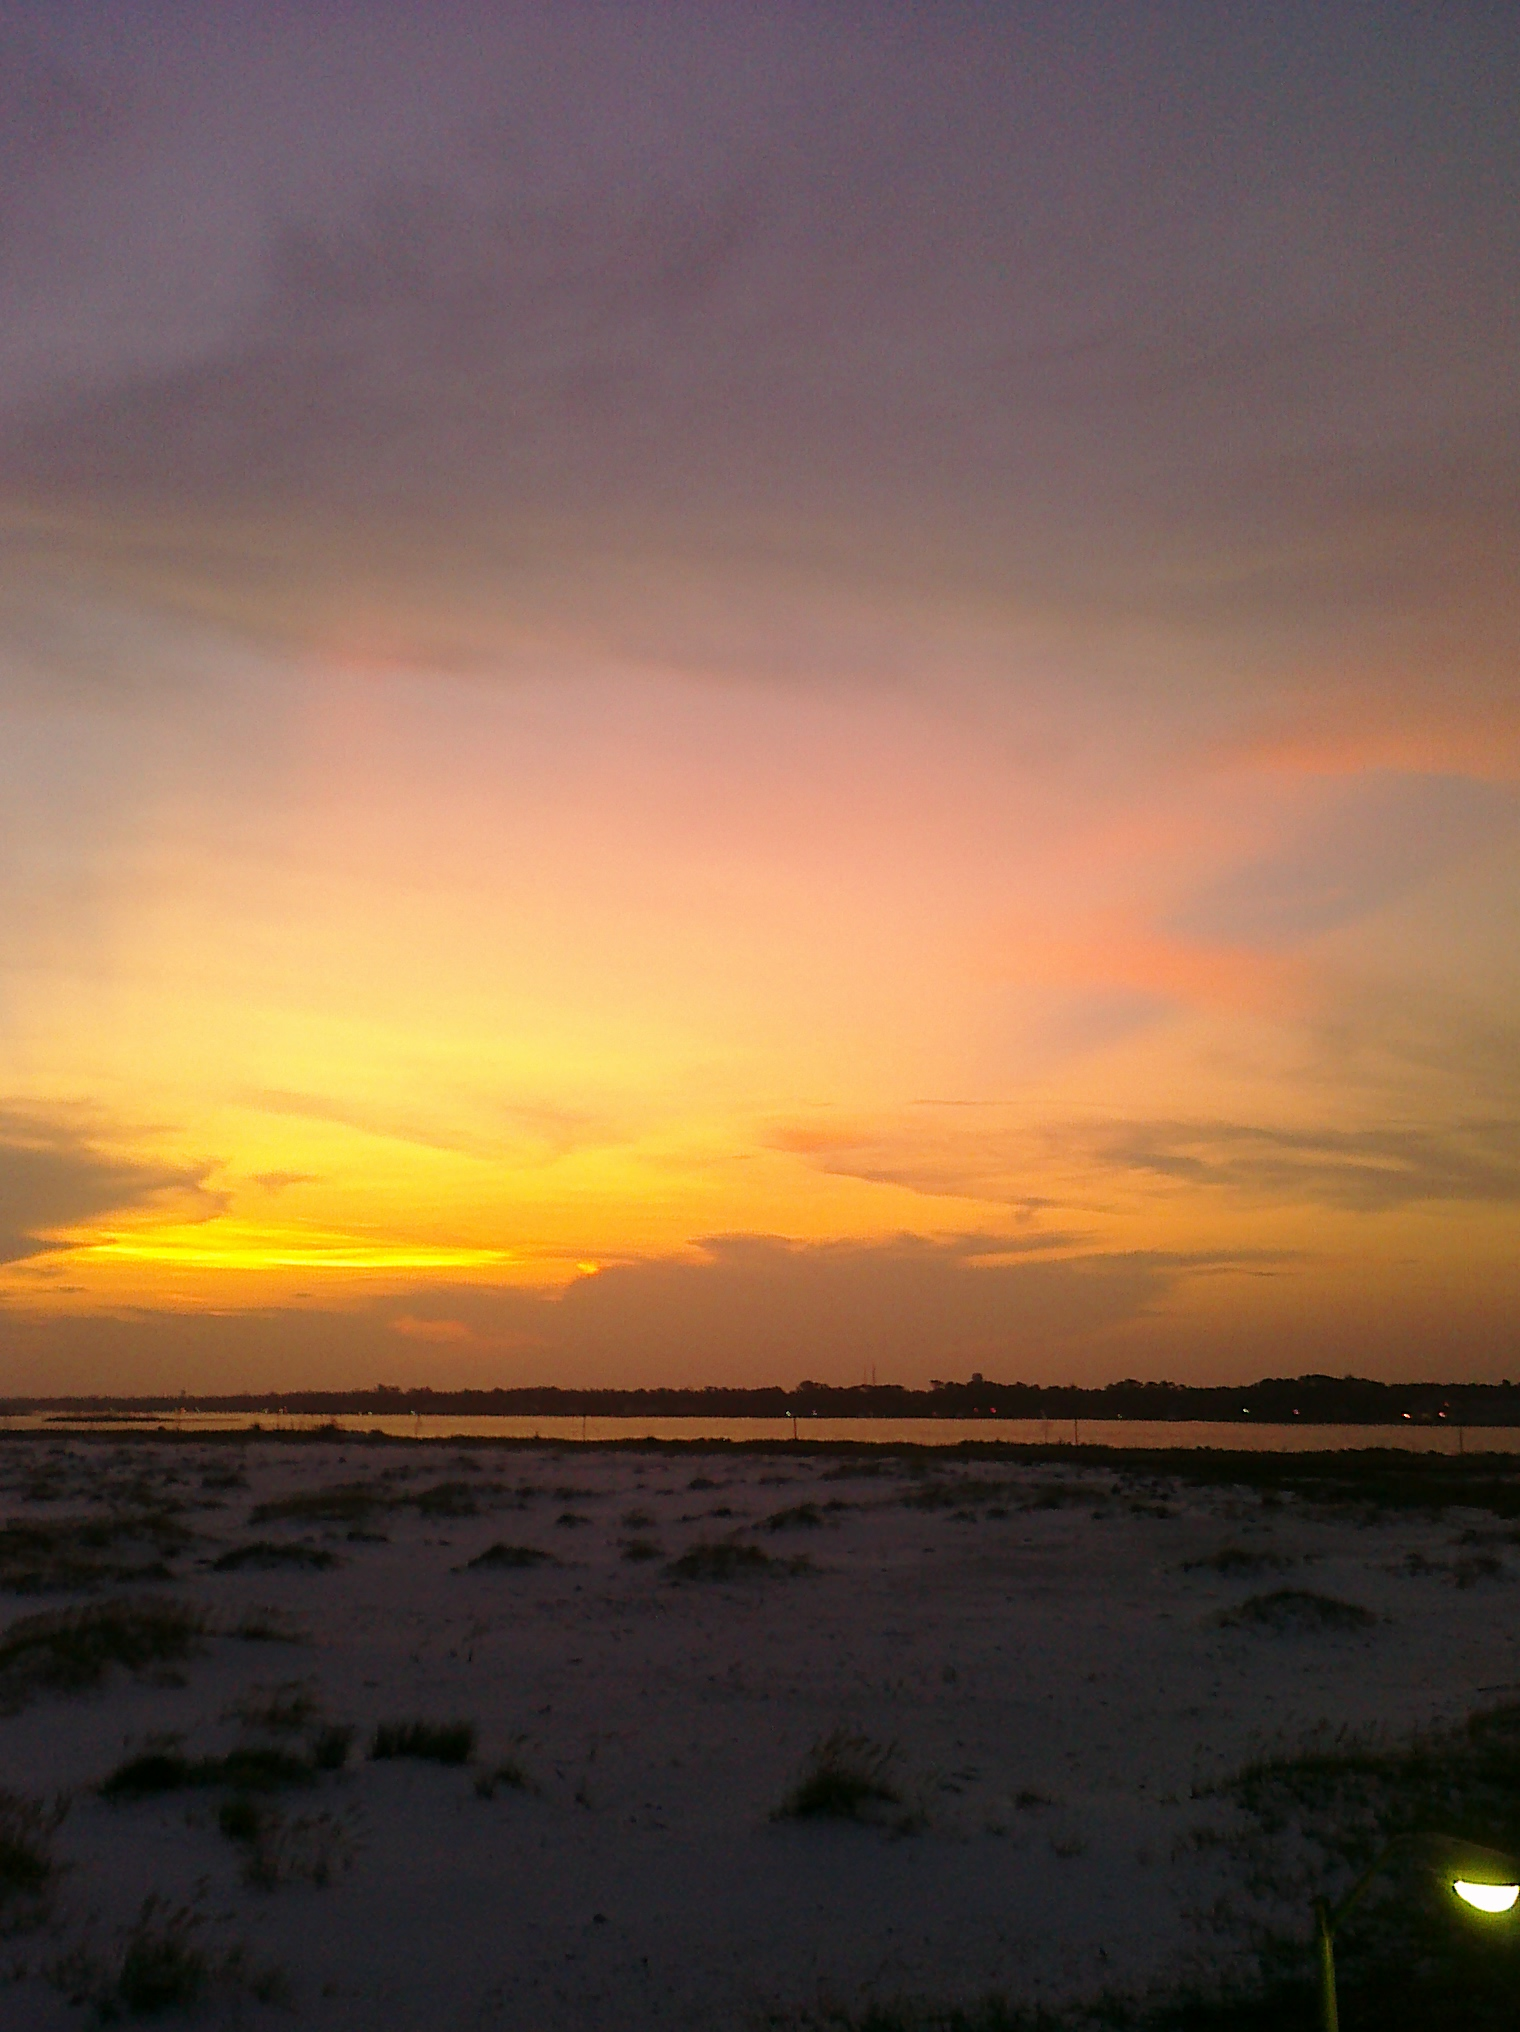 Lakeview St Mary Esther Fl Usa Sunrise Sunset Times